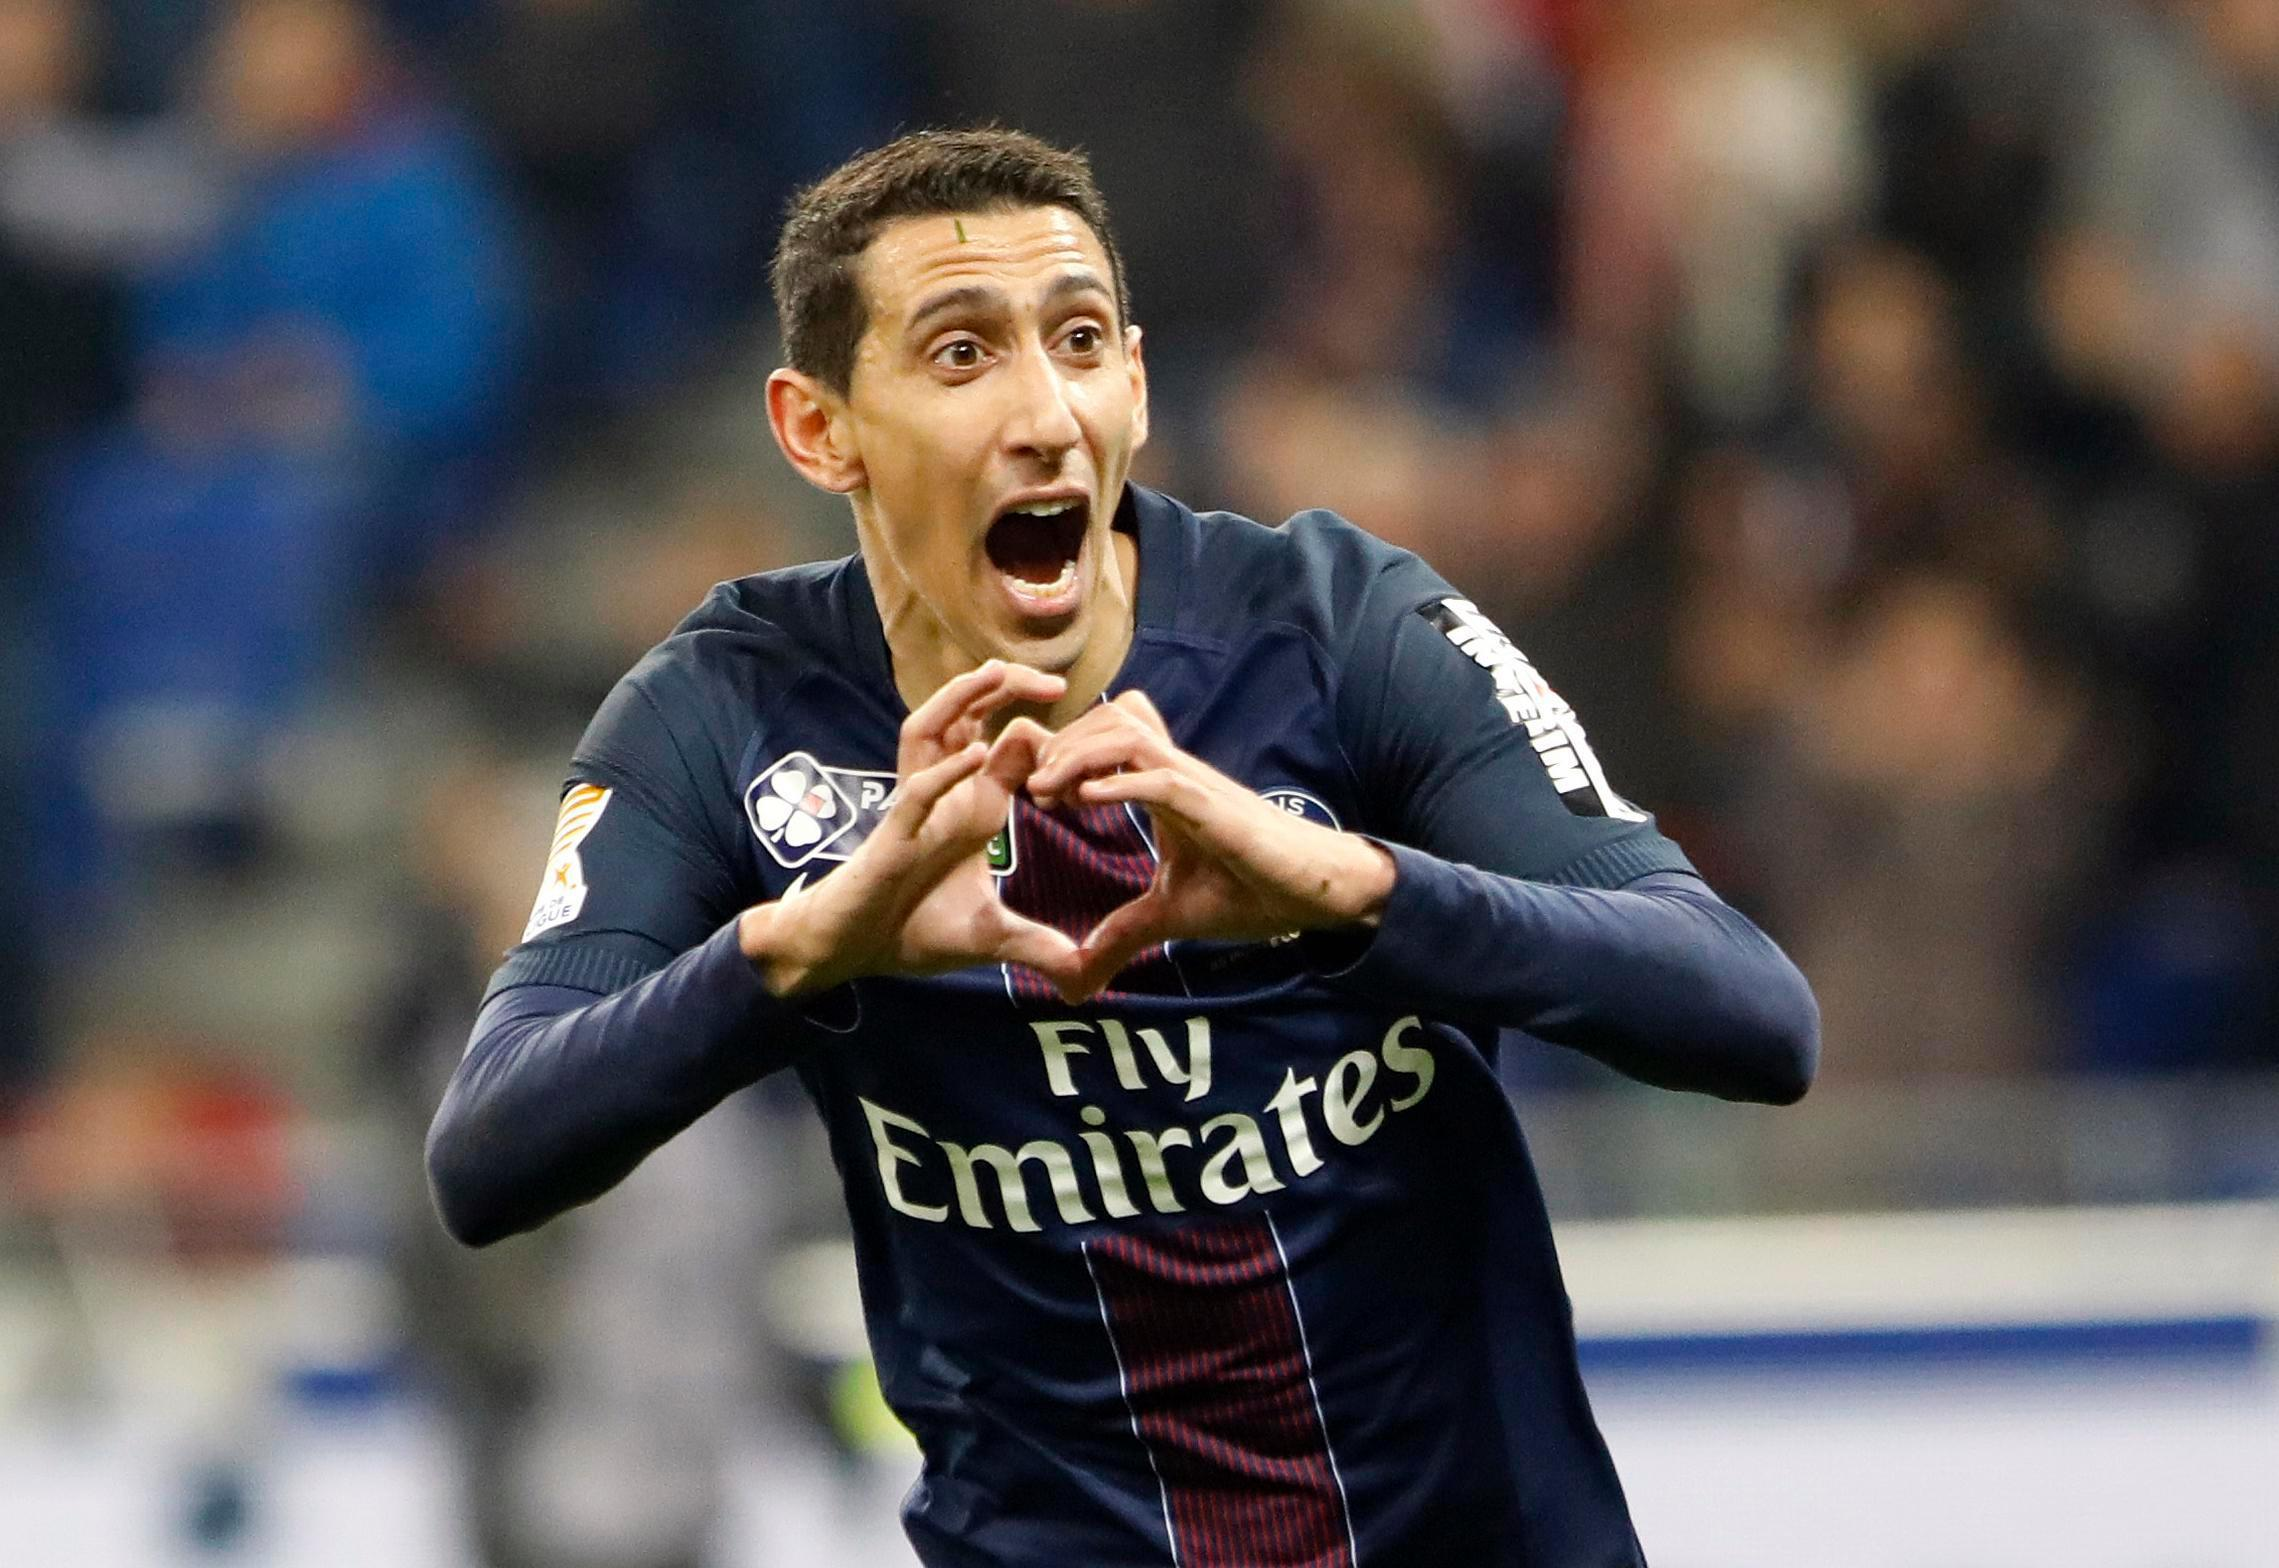 Di Maria would be a controversial alternative